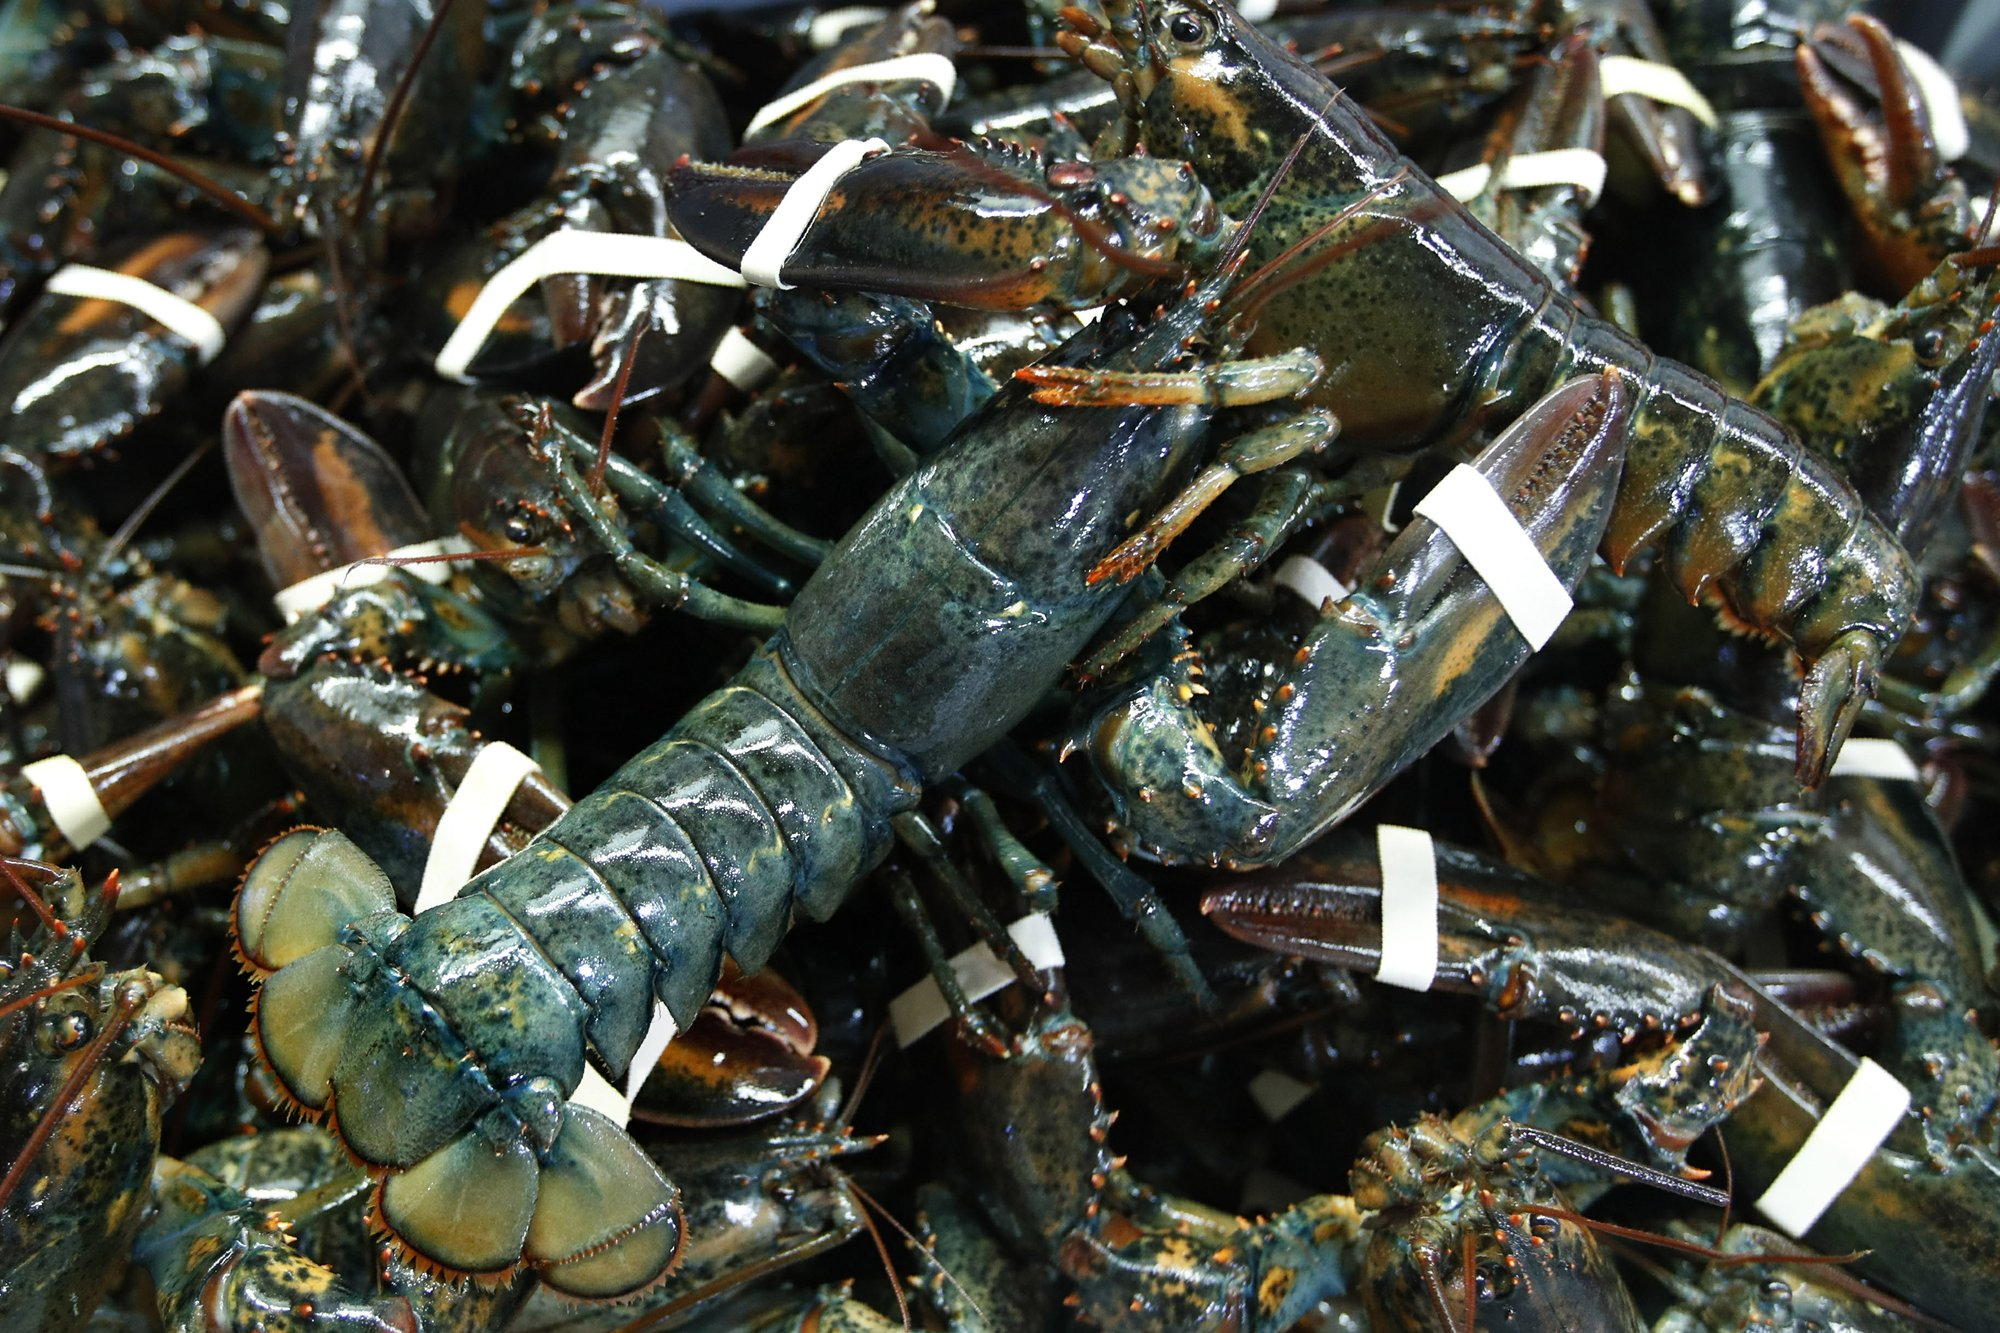 EU agrees to cut taxes on US lobsters in modest trade pact